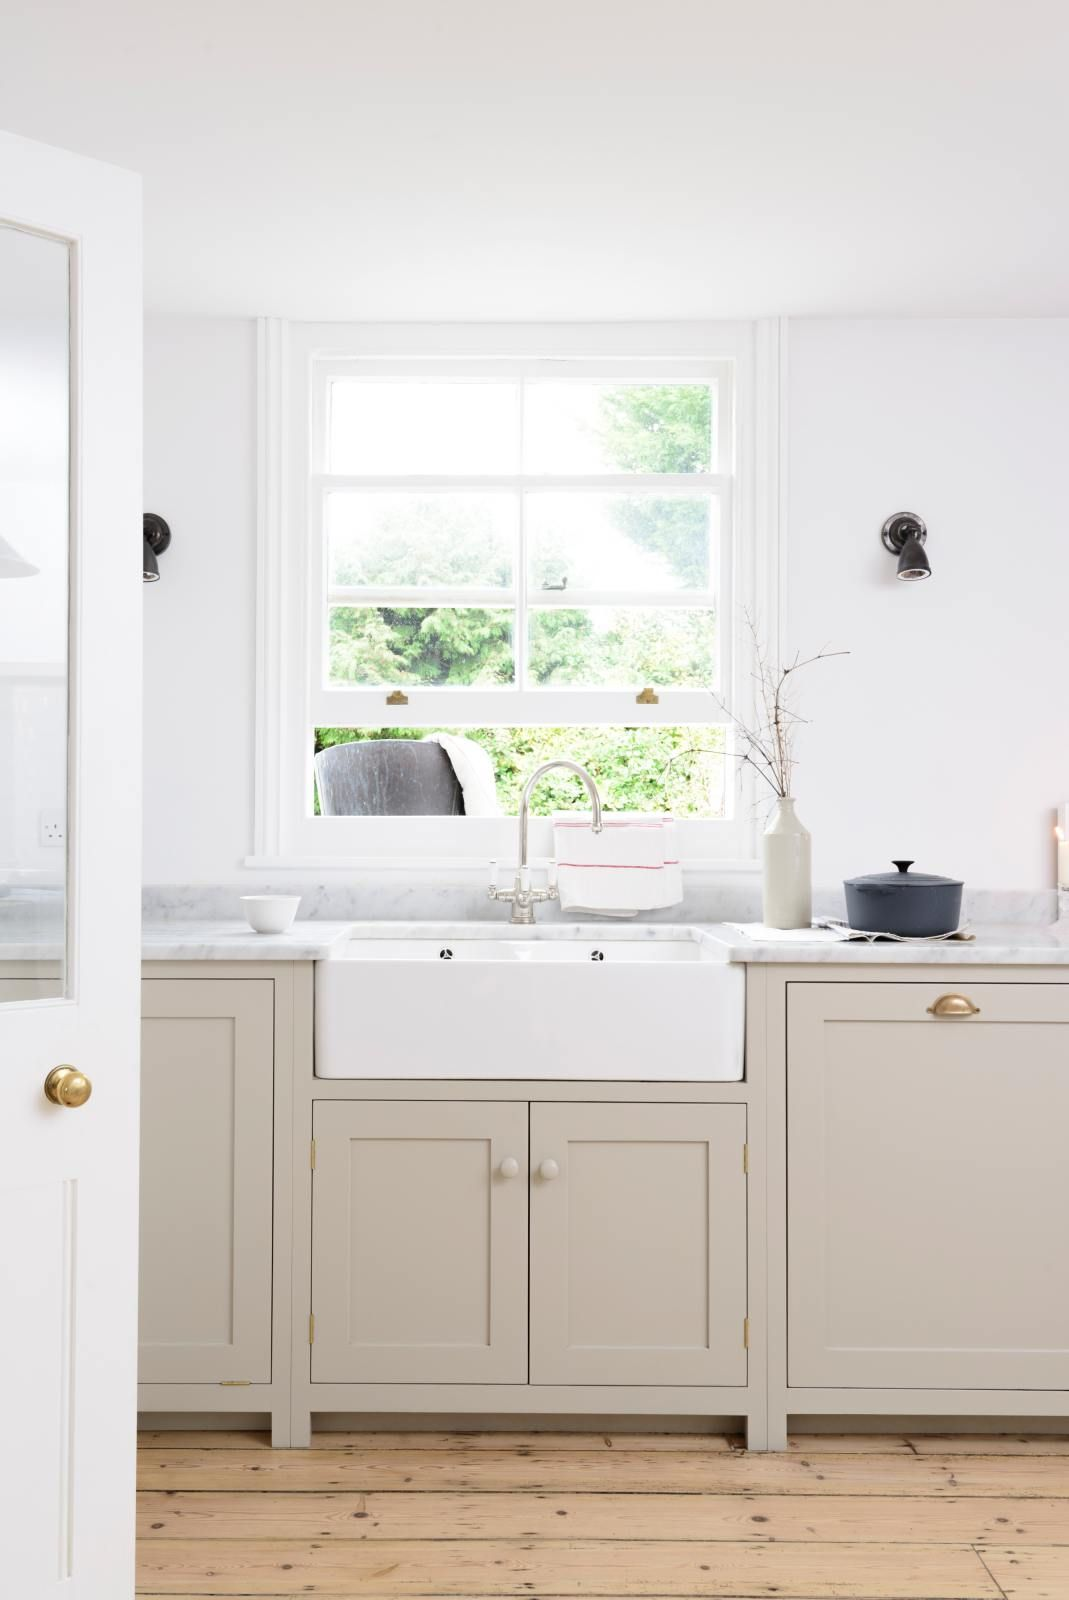 The Brighton Kitchen Devol Kitchens Taupe Kitchen Cabinets Taupe Kitchen Farmhouse Style Kitchen Cabinets